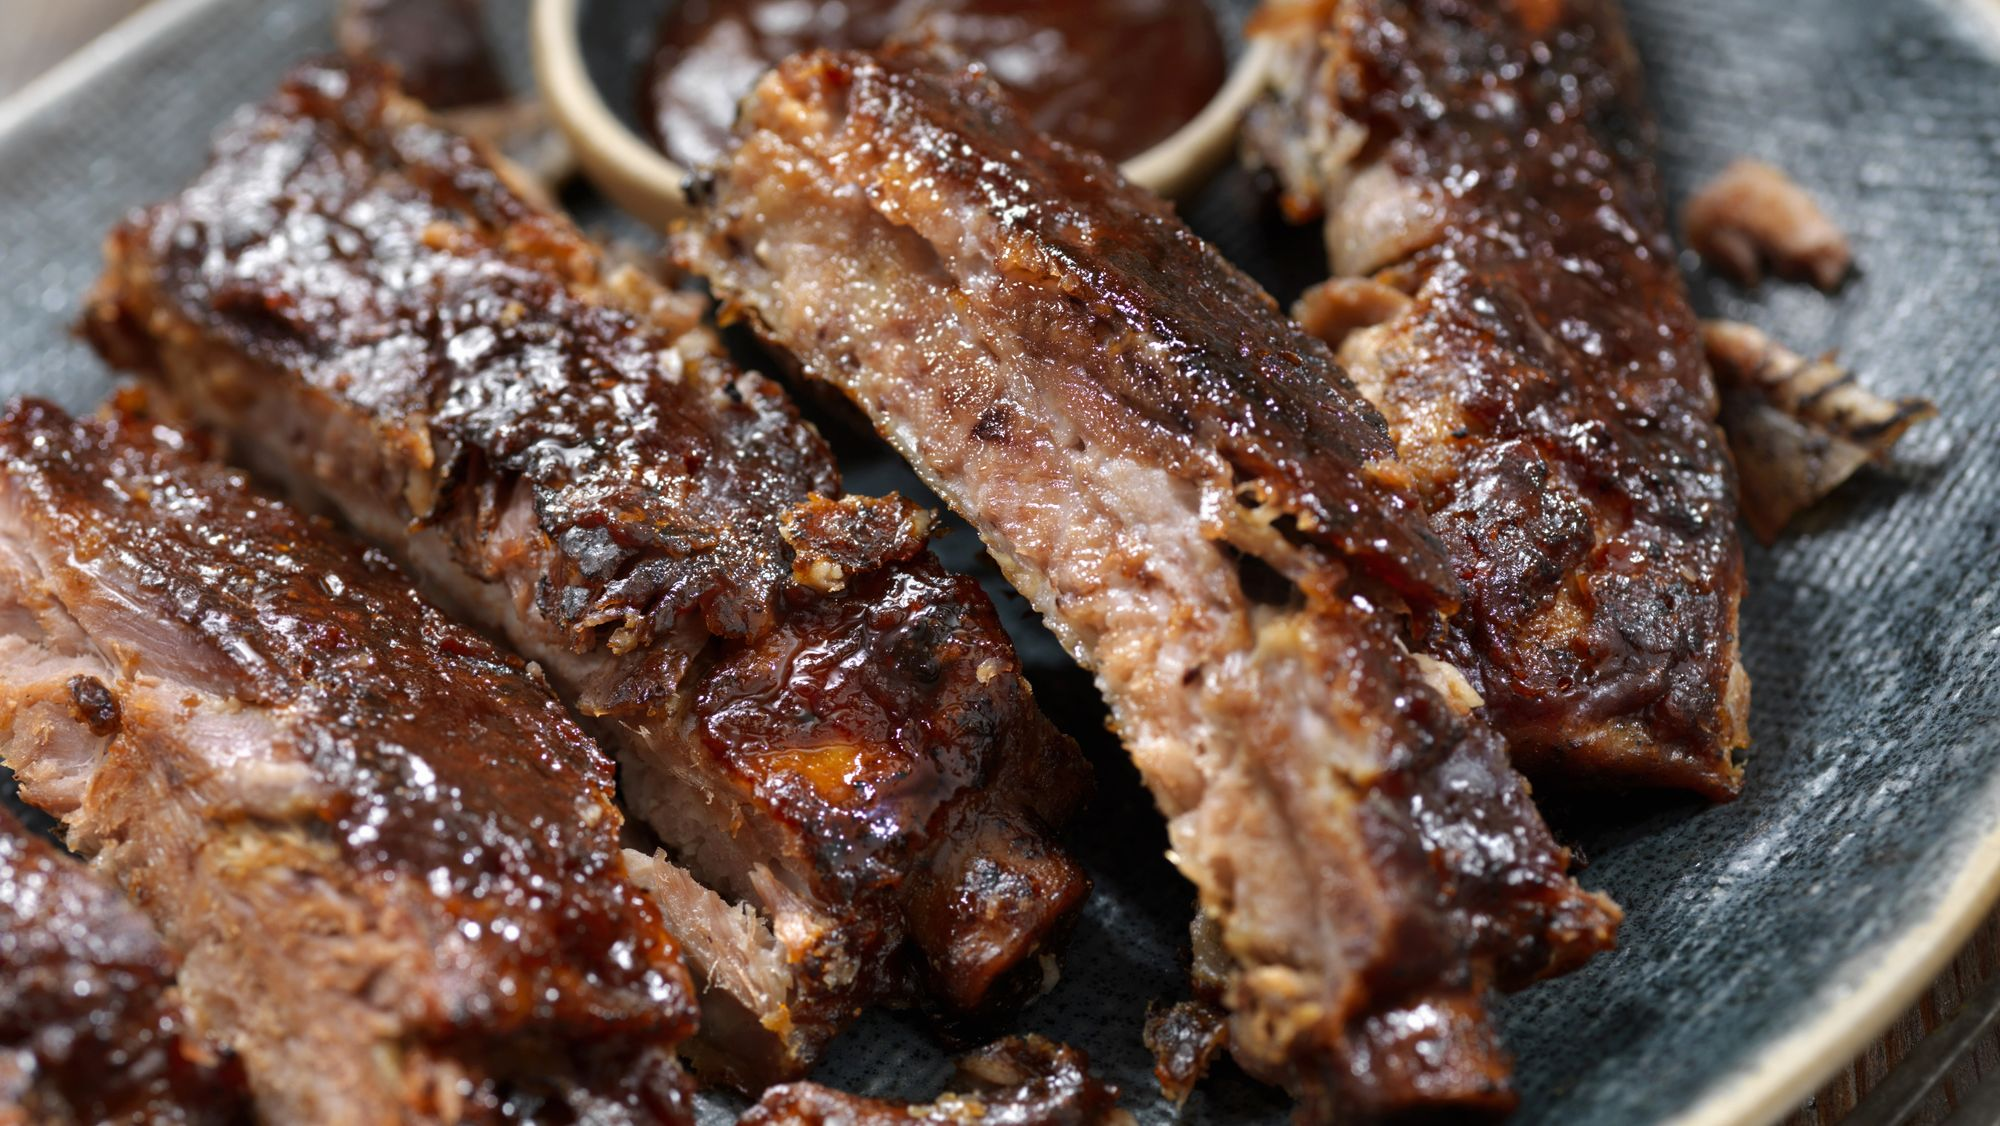 The 20 Best Barbecue Cities in America